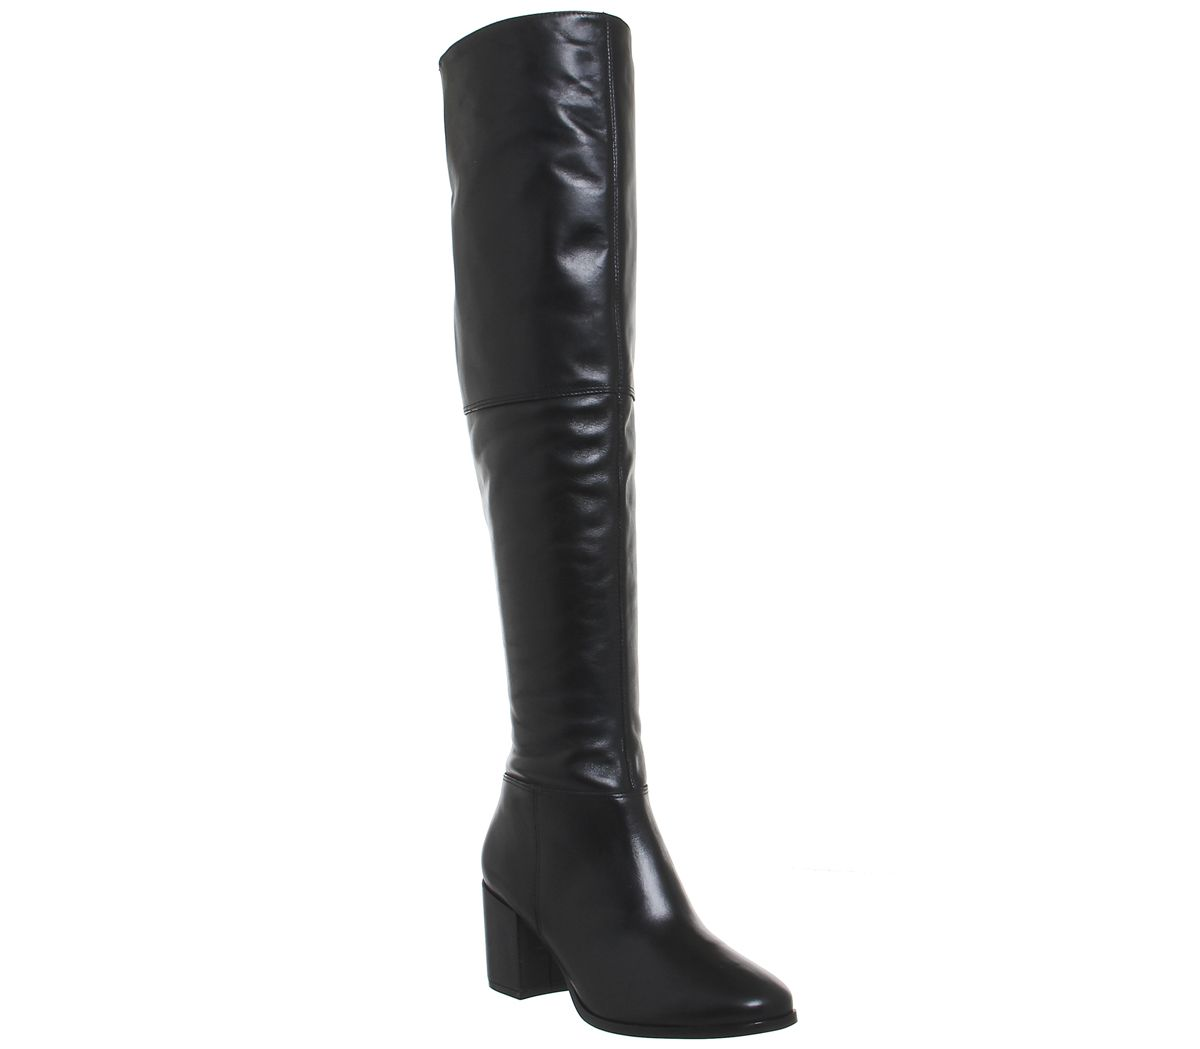 9d77bfa4b33 Office Know It All Over the Knee Boots Black Leather - Knee Boots